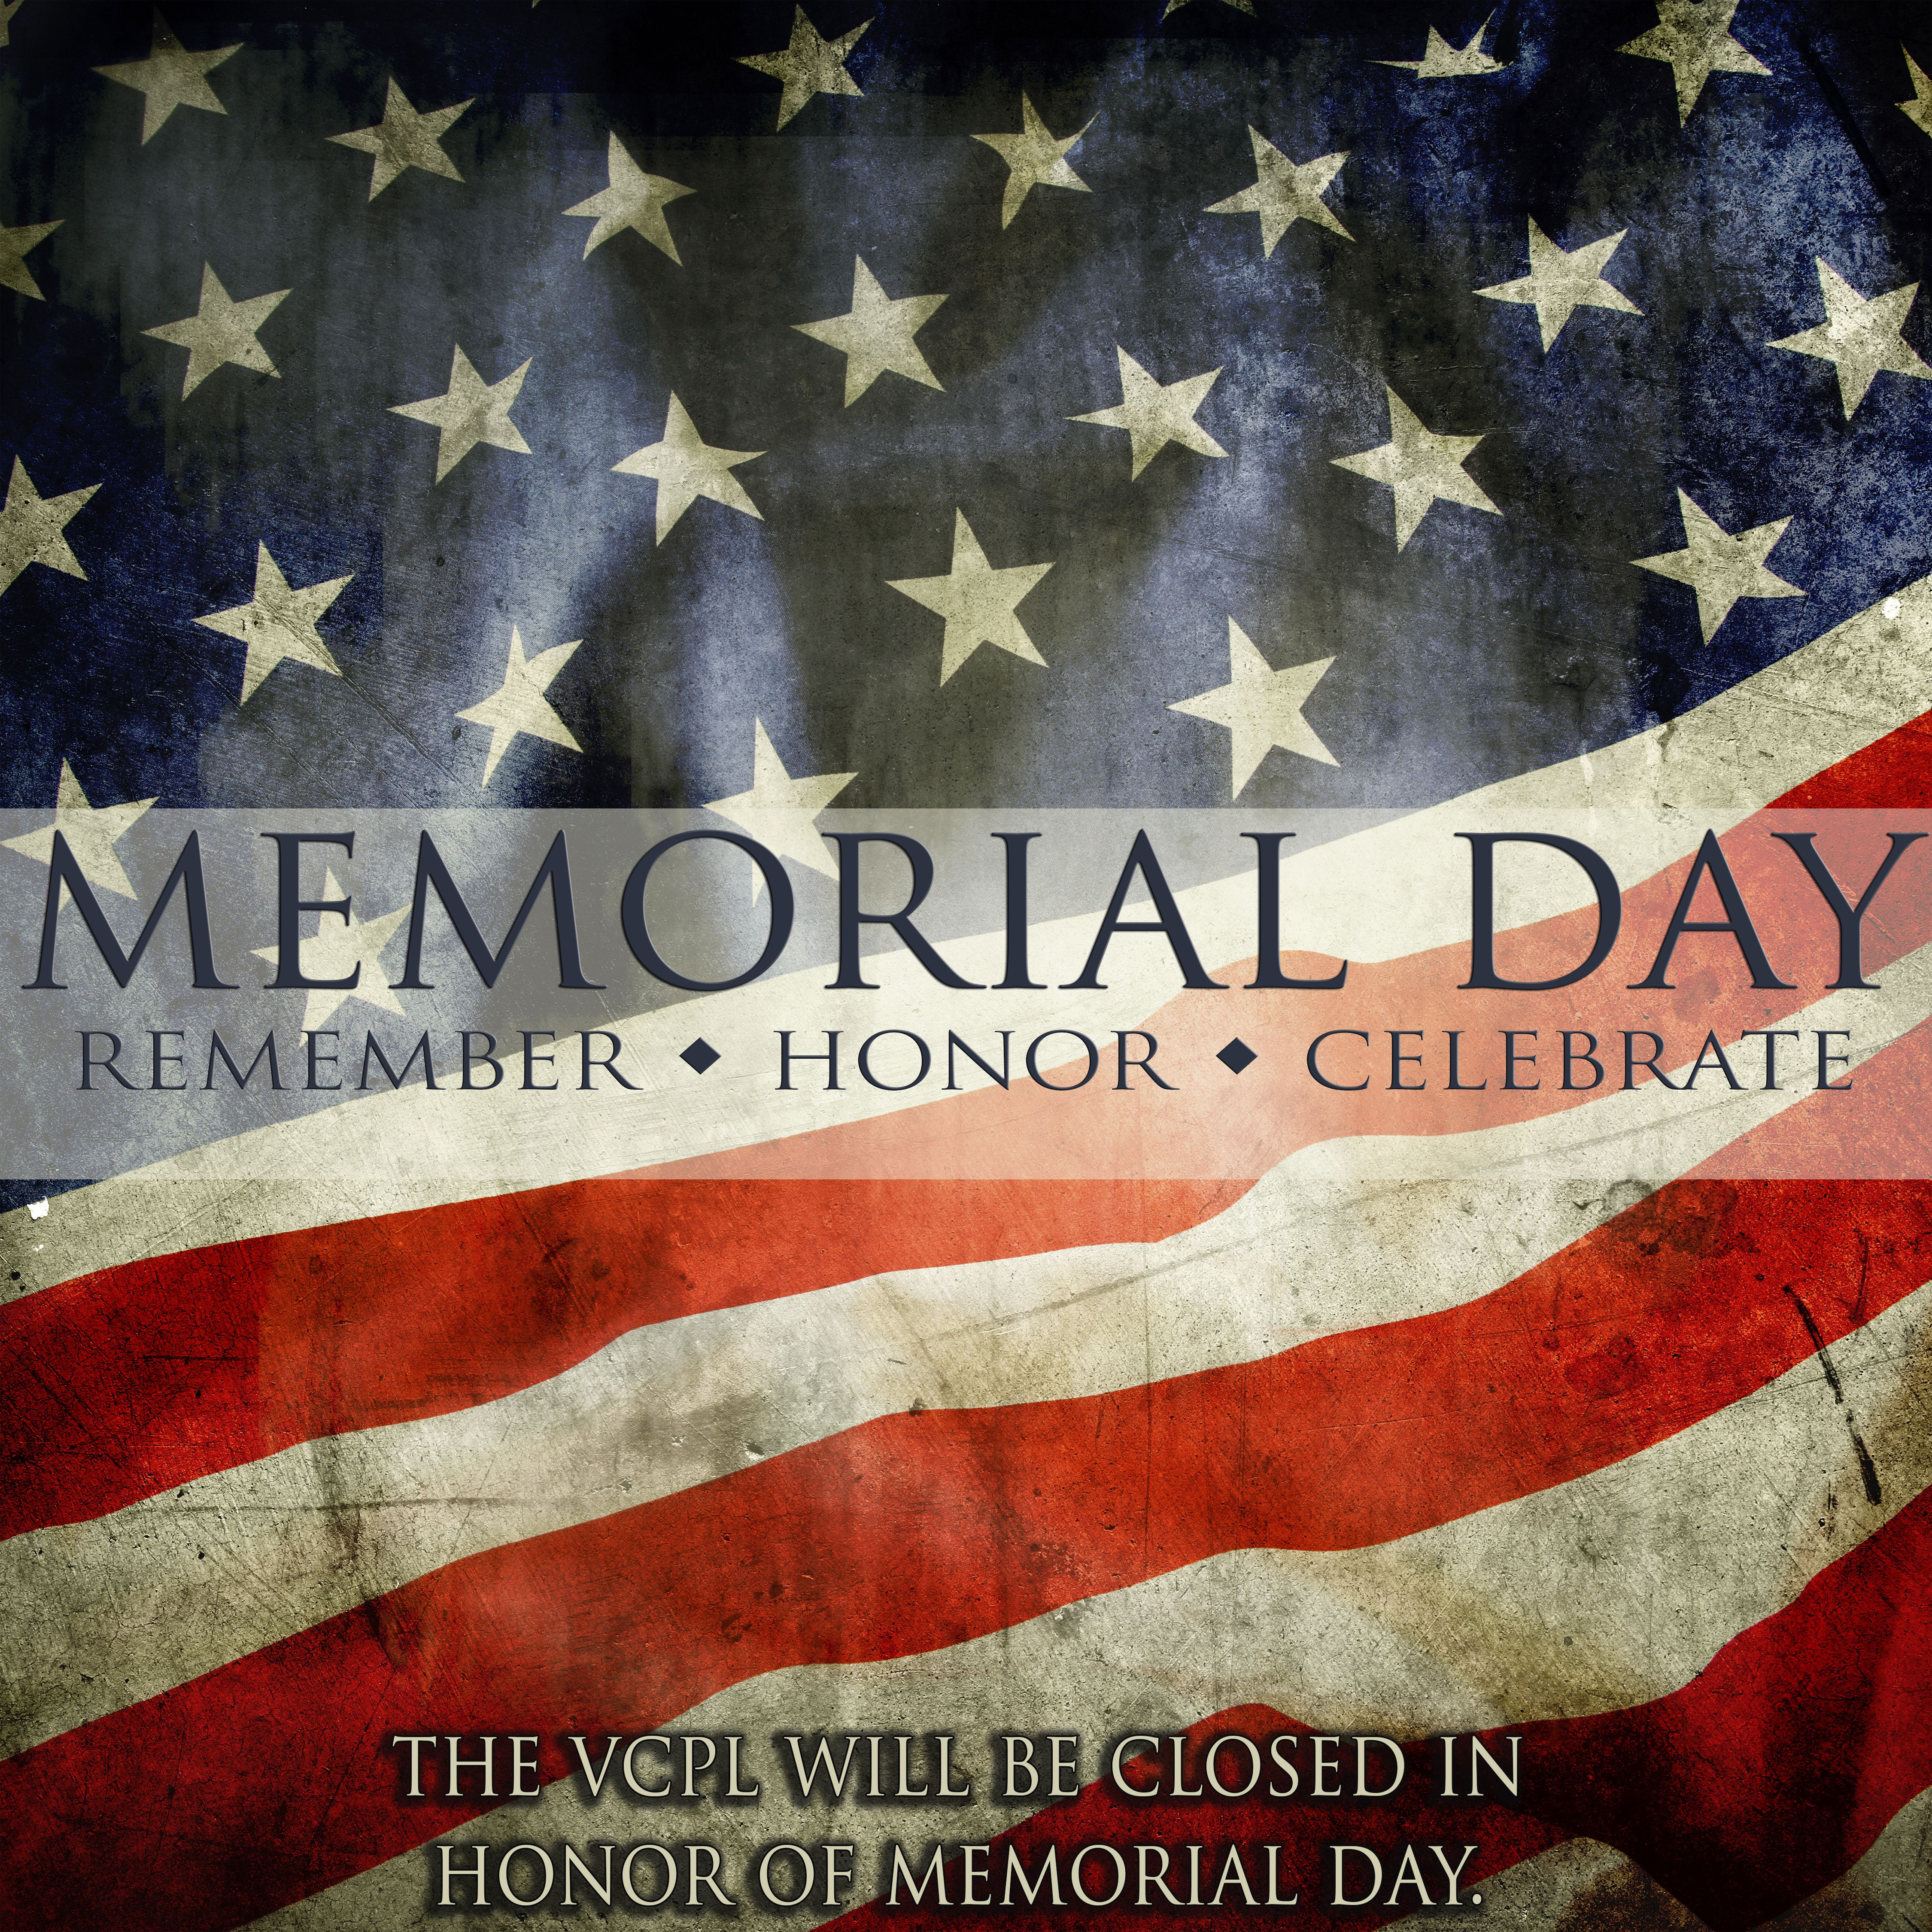 In Honor Of Memorial Day All Vcpl Locations Will Be Closed On Sunday May 24 And Monday May 25 Memorial Day Memories Country Flags